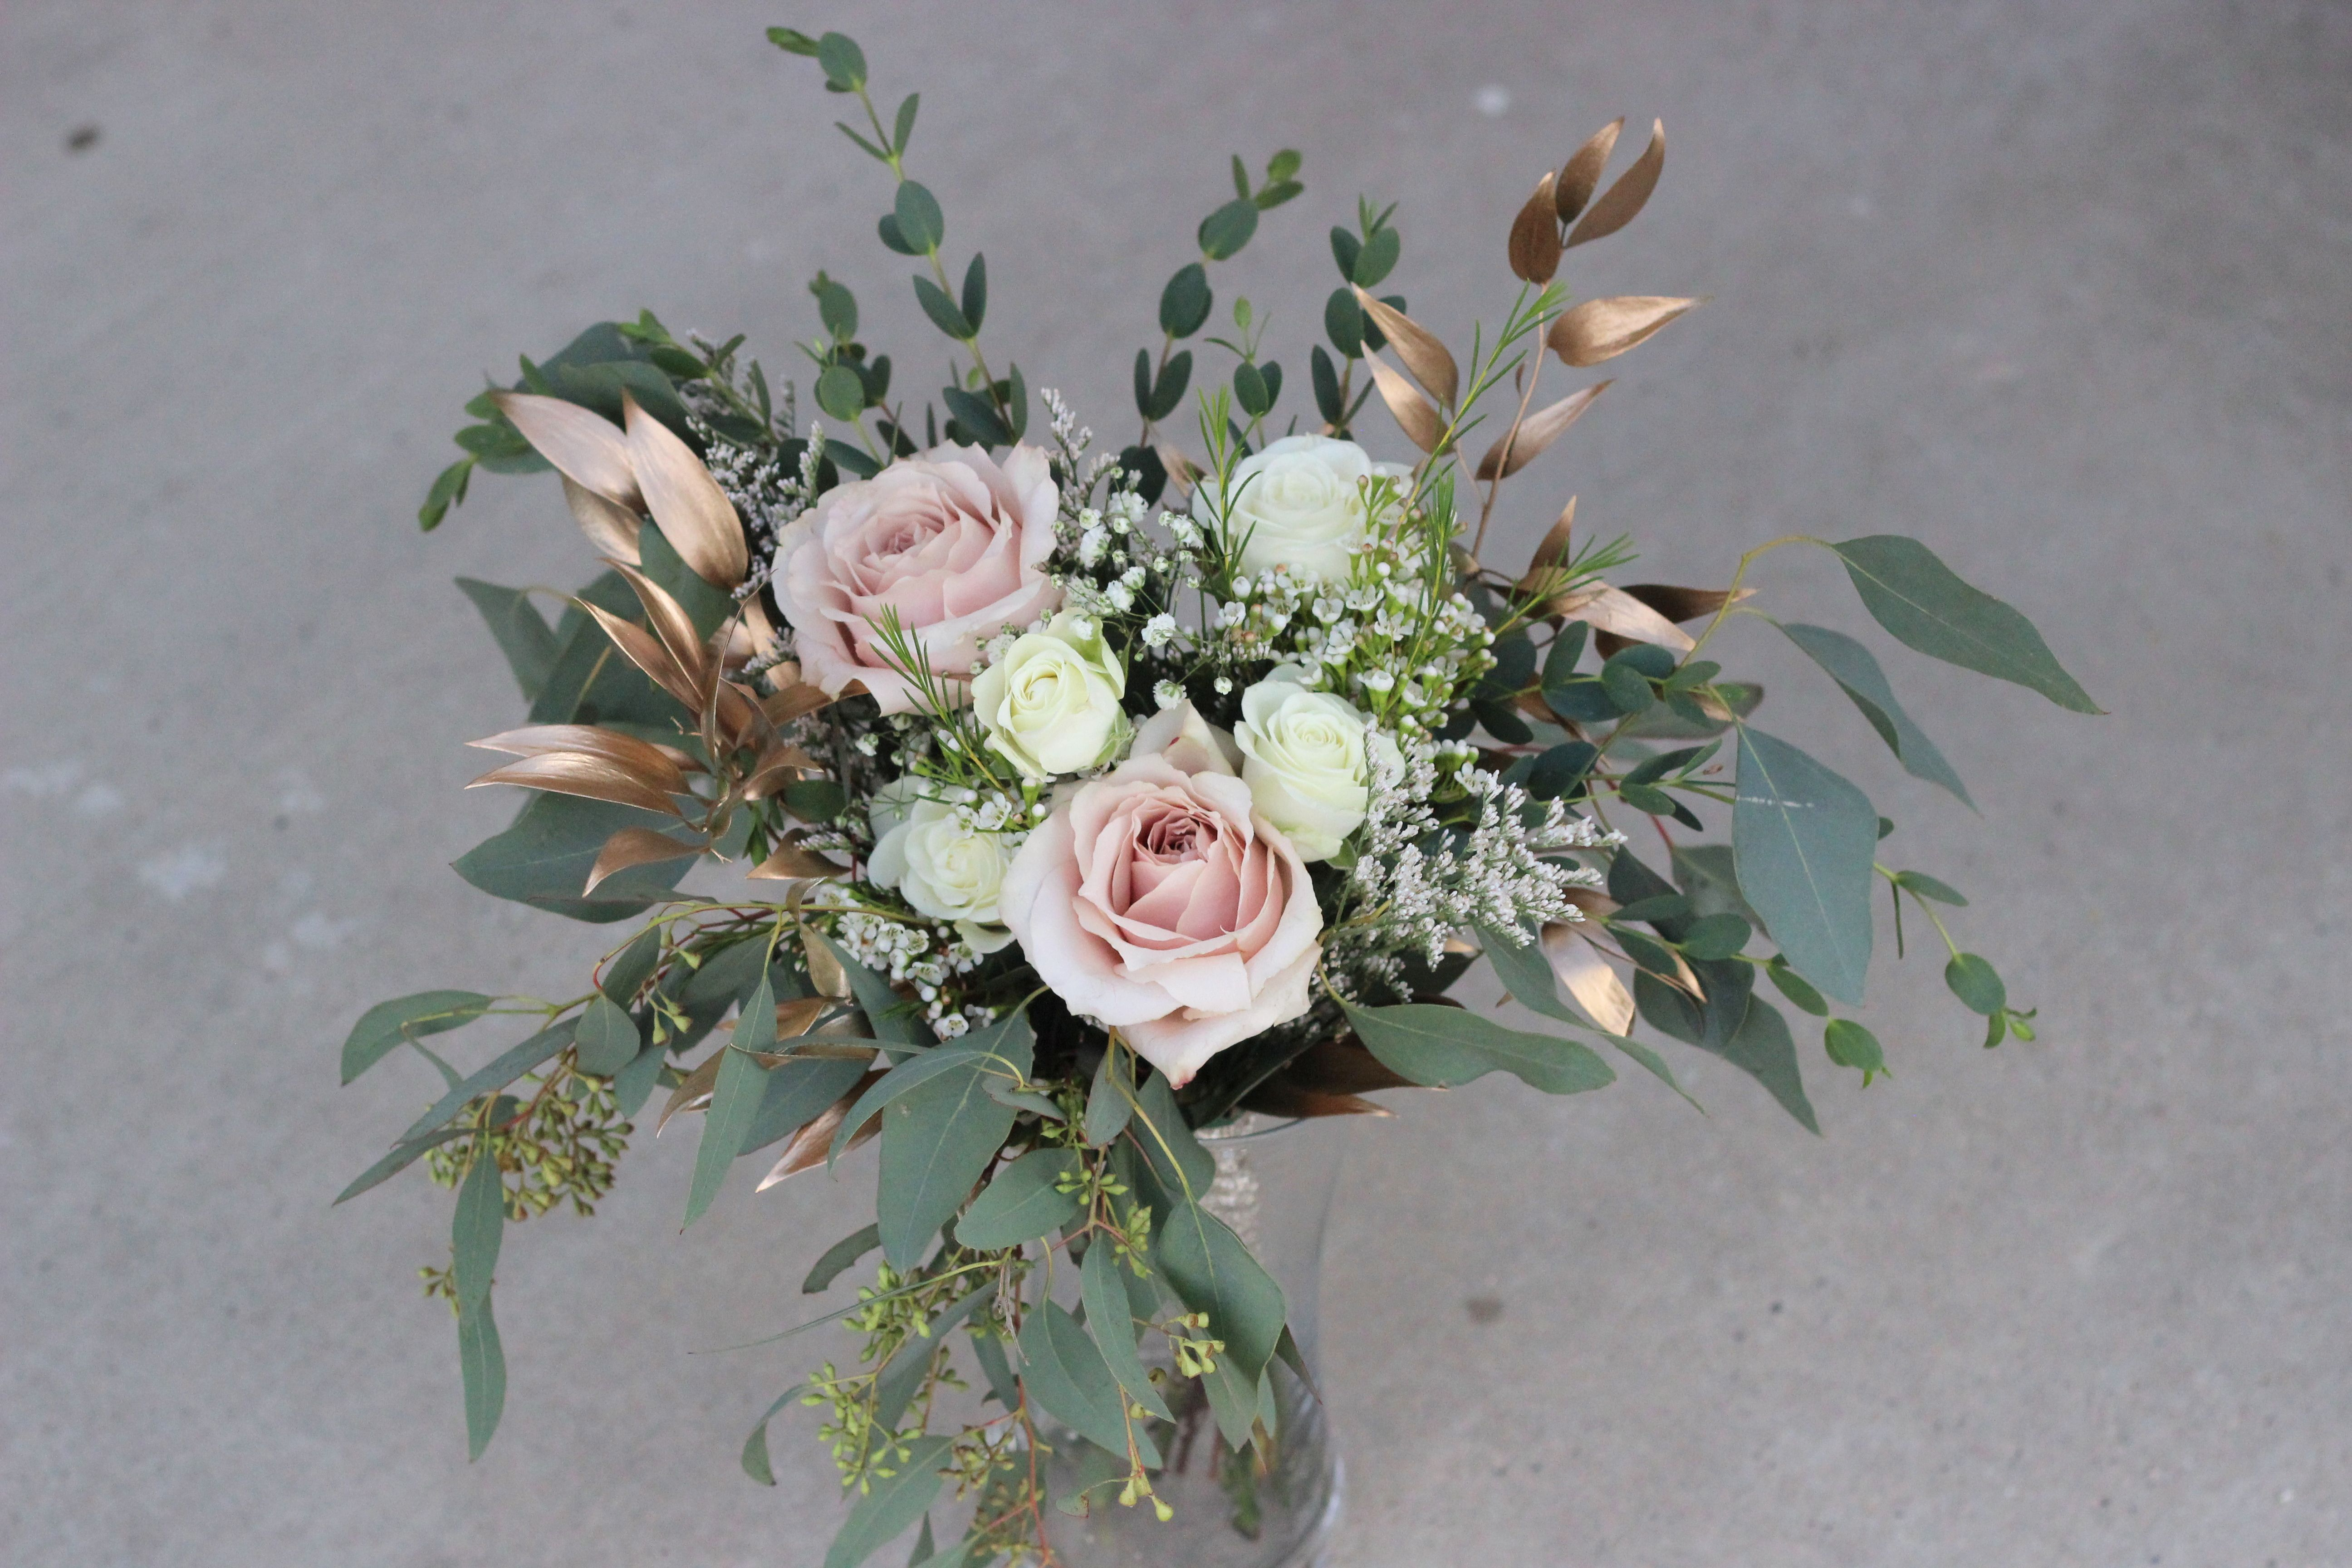 Bridesmaids Bouquet Quicksand Roses White Lisianthus Gold Tinted Italian Ruscus Eucalyptus Baby S Breath Bridesmaid Bouquet Wedding Bouquets Wax Flowers